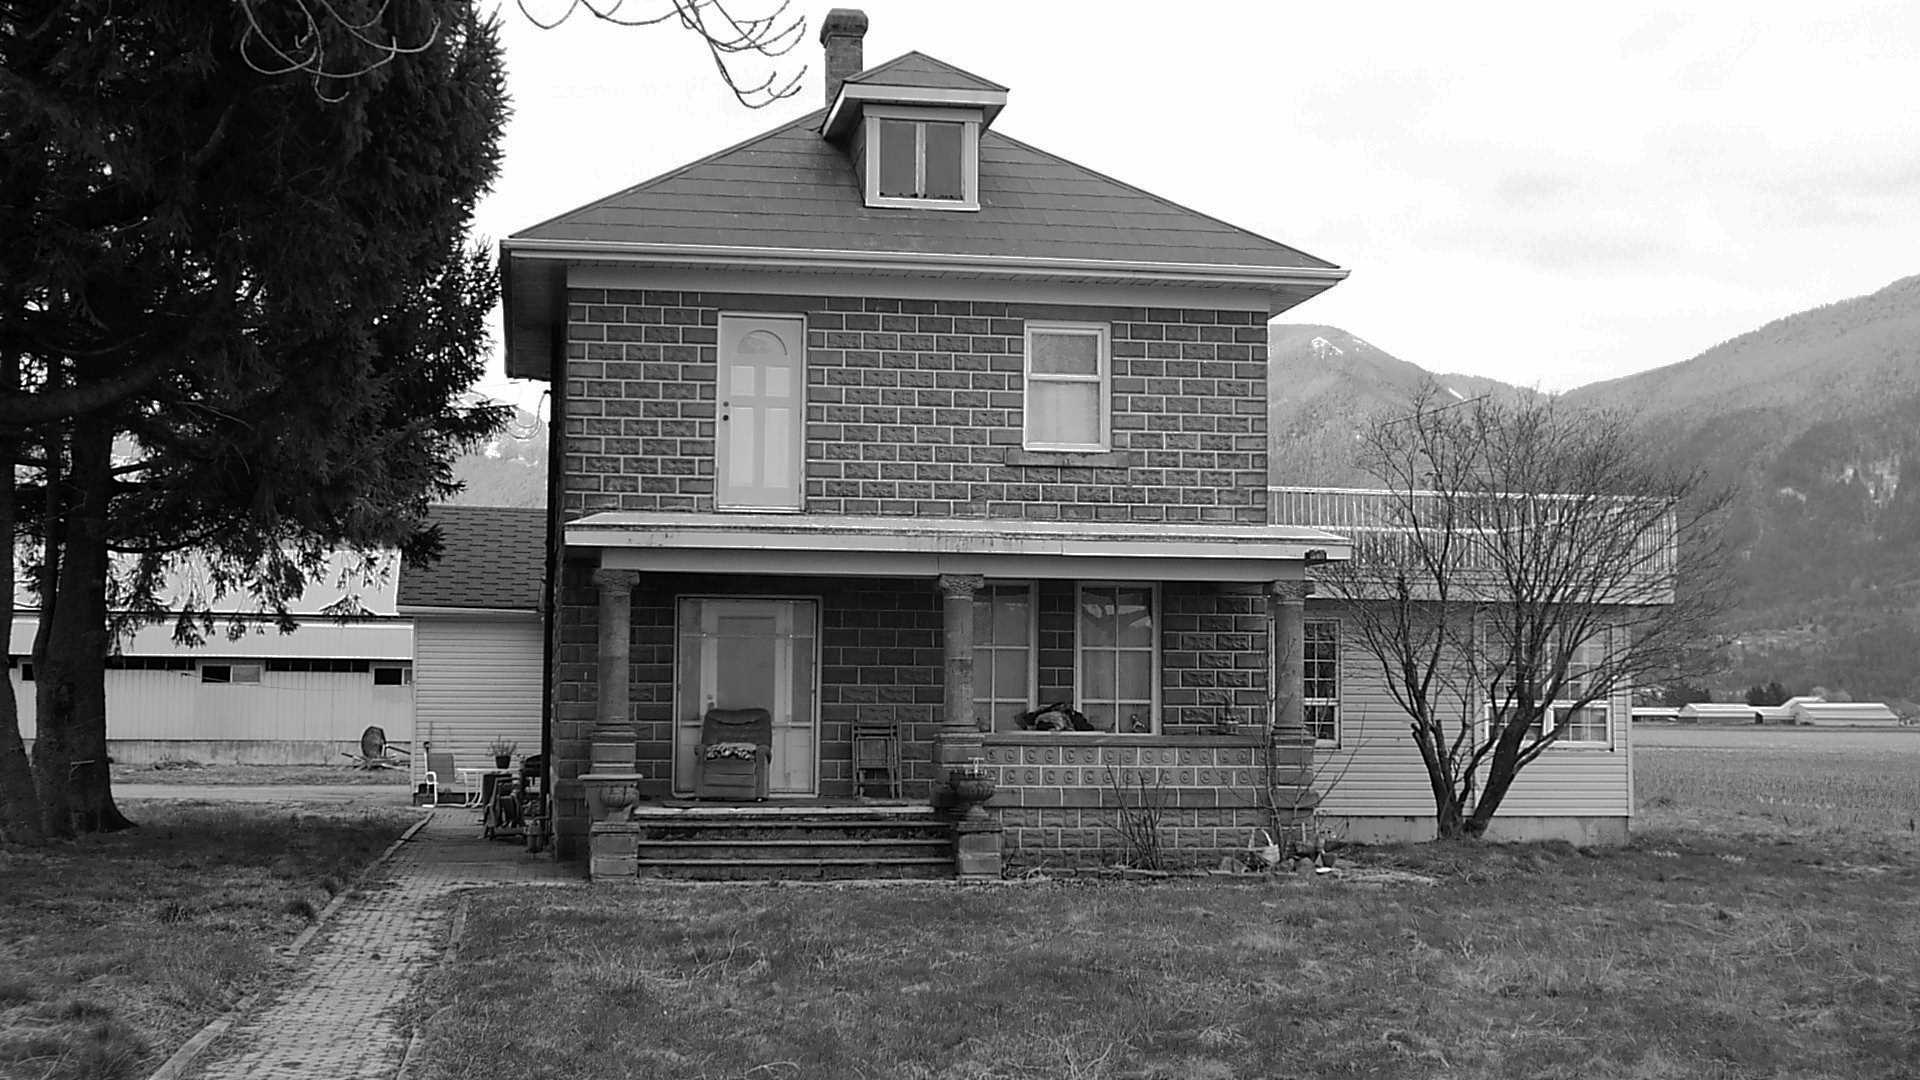 The royal hotel chilliwack blog concrete block houses for Cement block homes